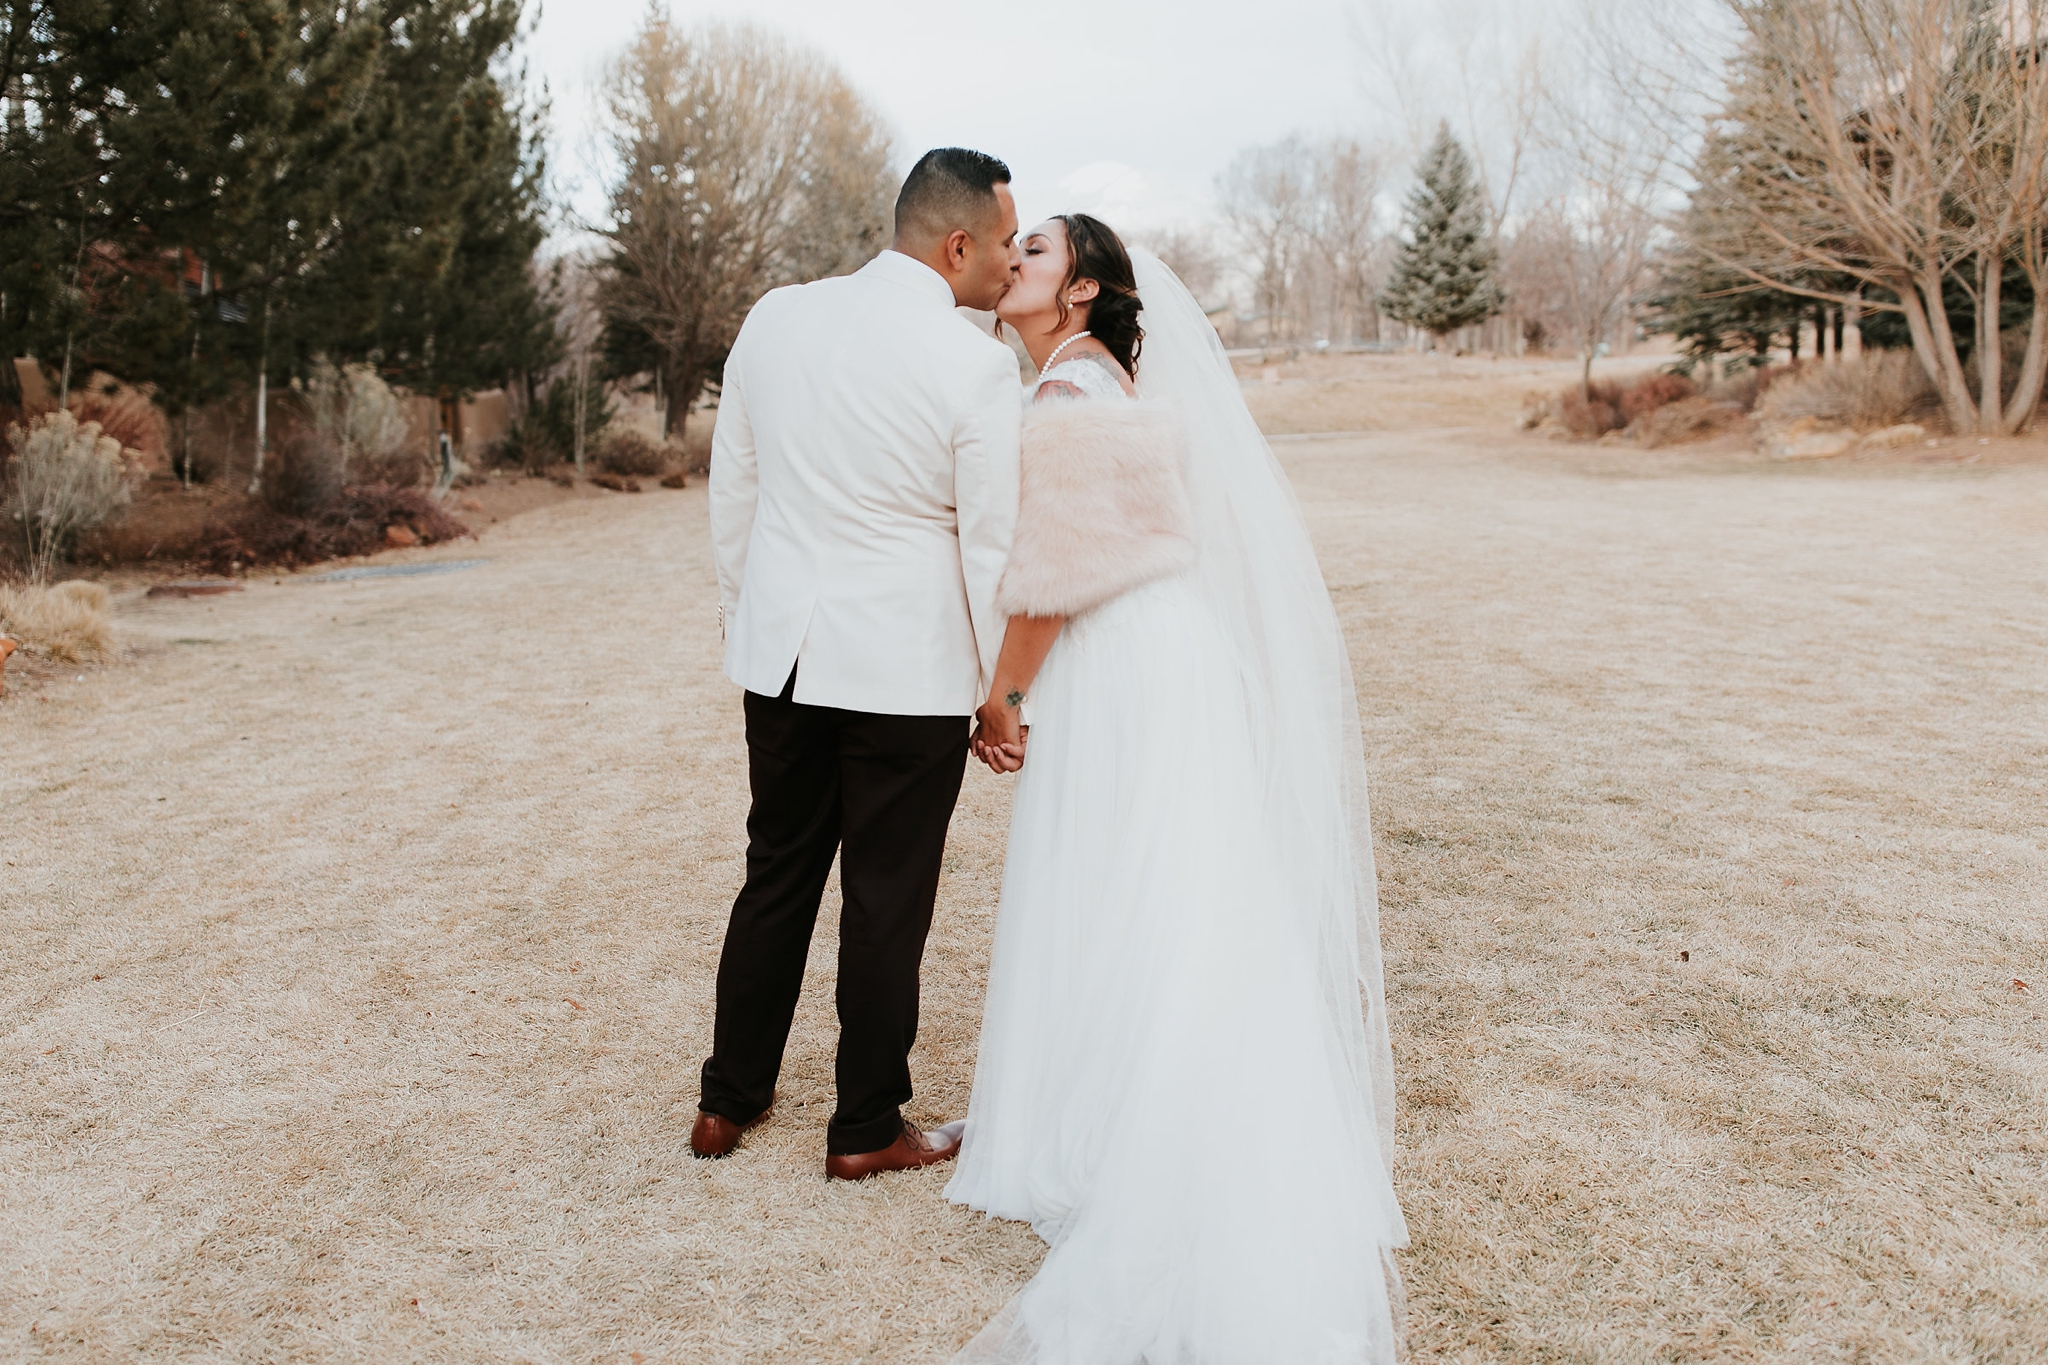 Alicia+lucia+photography+-+albuquerque+wedding+photographer+-+santa+fe+wedding+photography+-+new+mexico+wedding+photographer+-+new+mexico+wedding+-+wedding+gowns+-+bridal+gowns+-+a+line+wedding+gown_0039.jpg